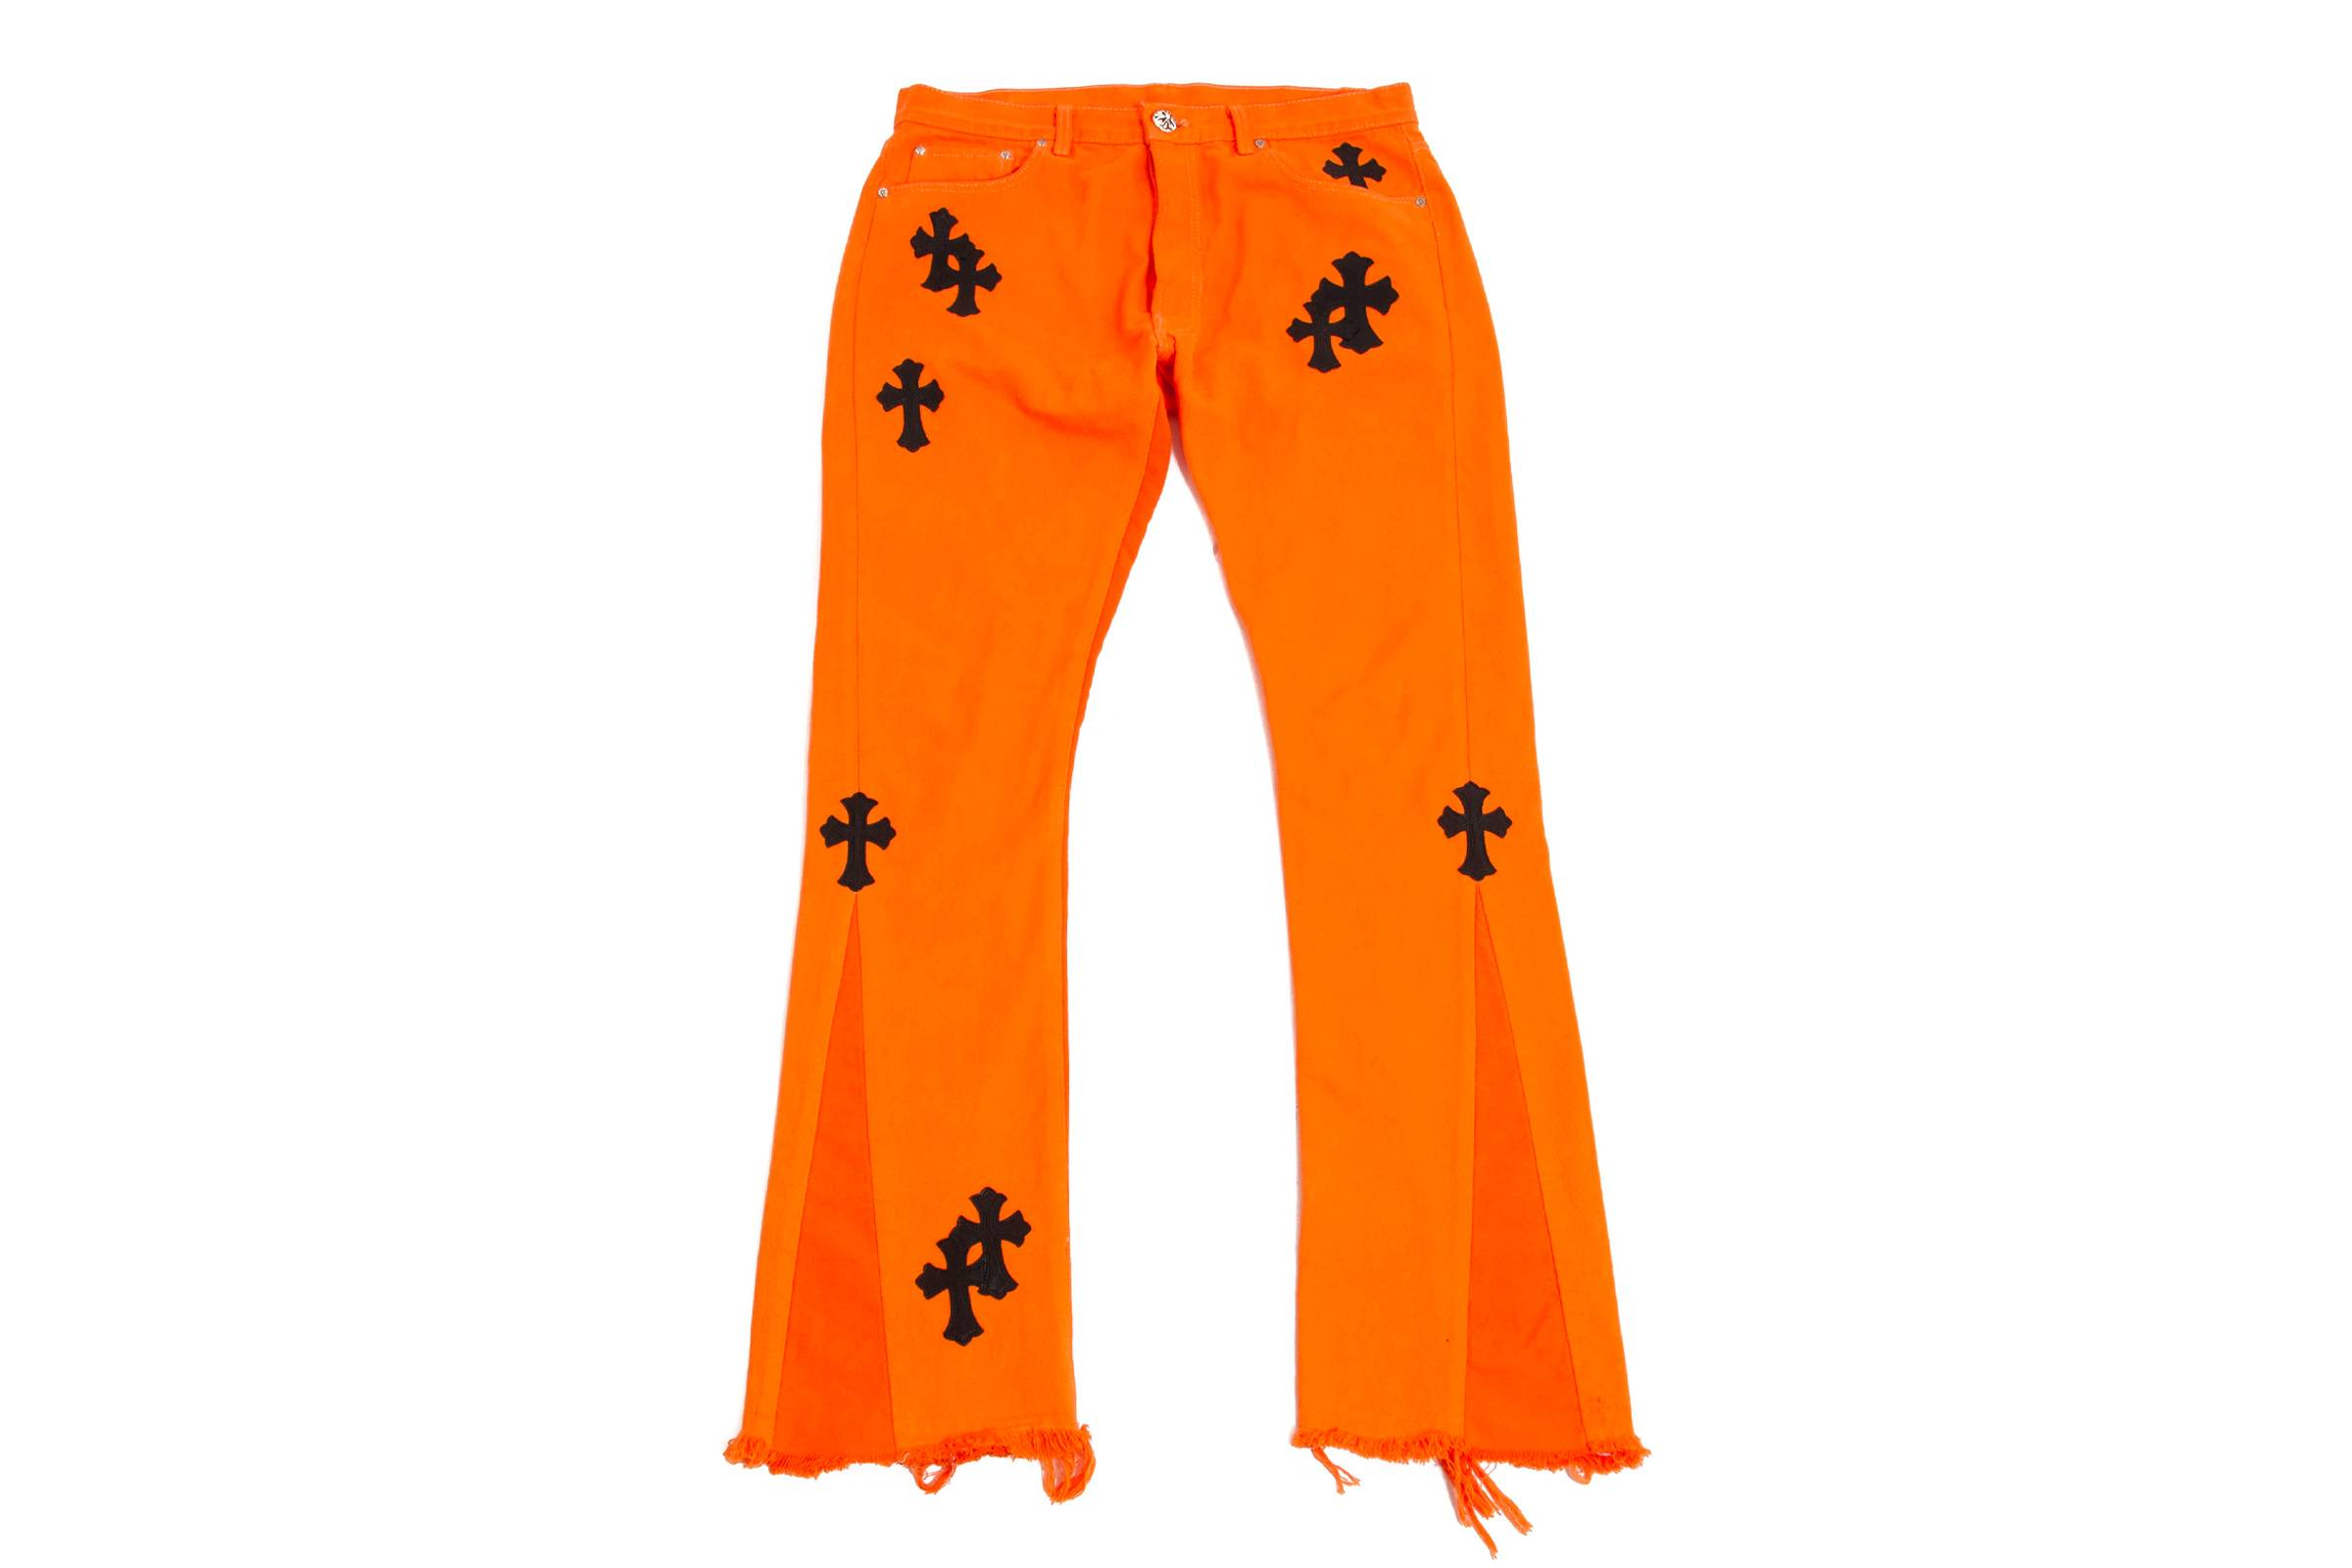 Off-White x Chrome Hearts Jeans